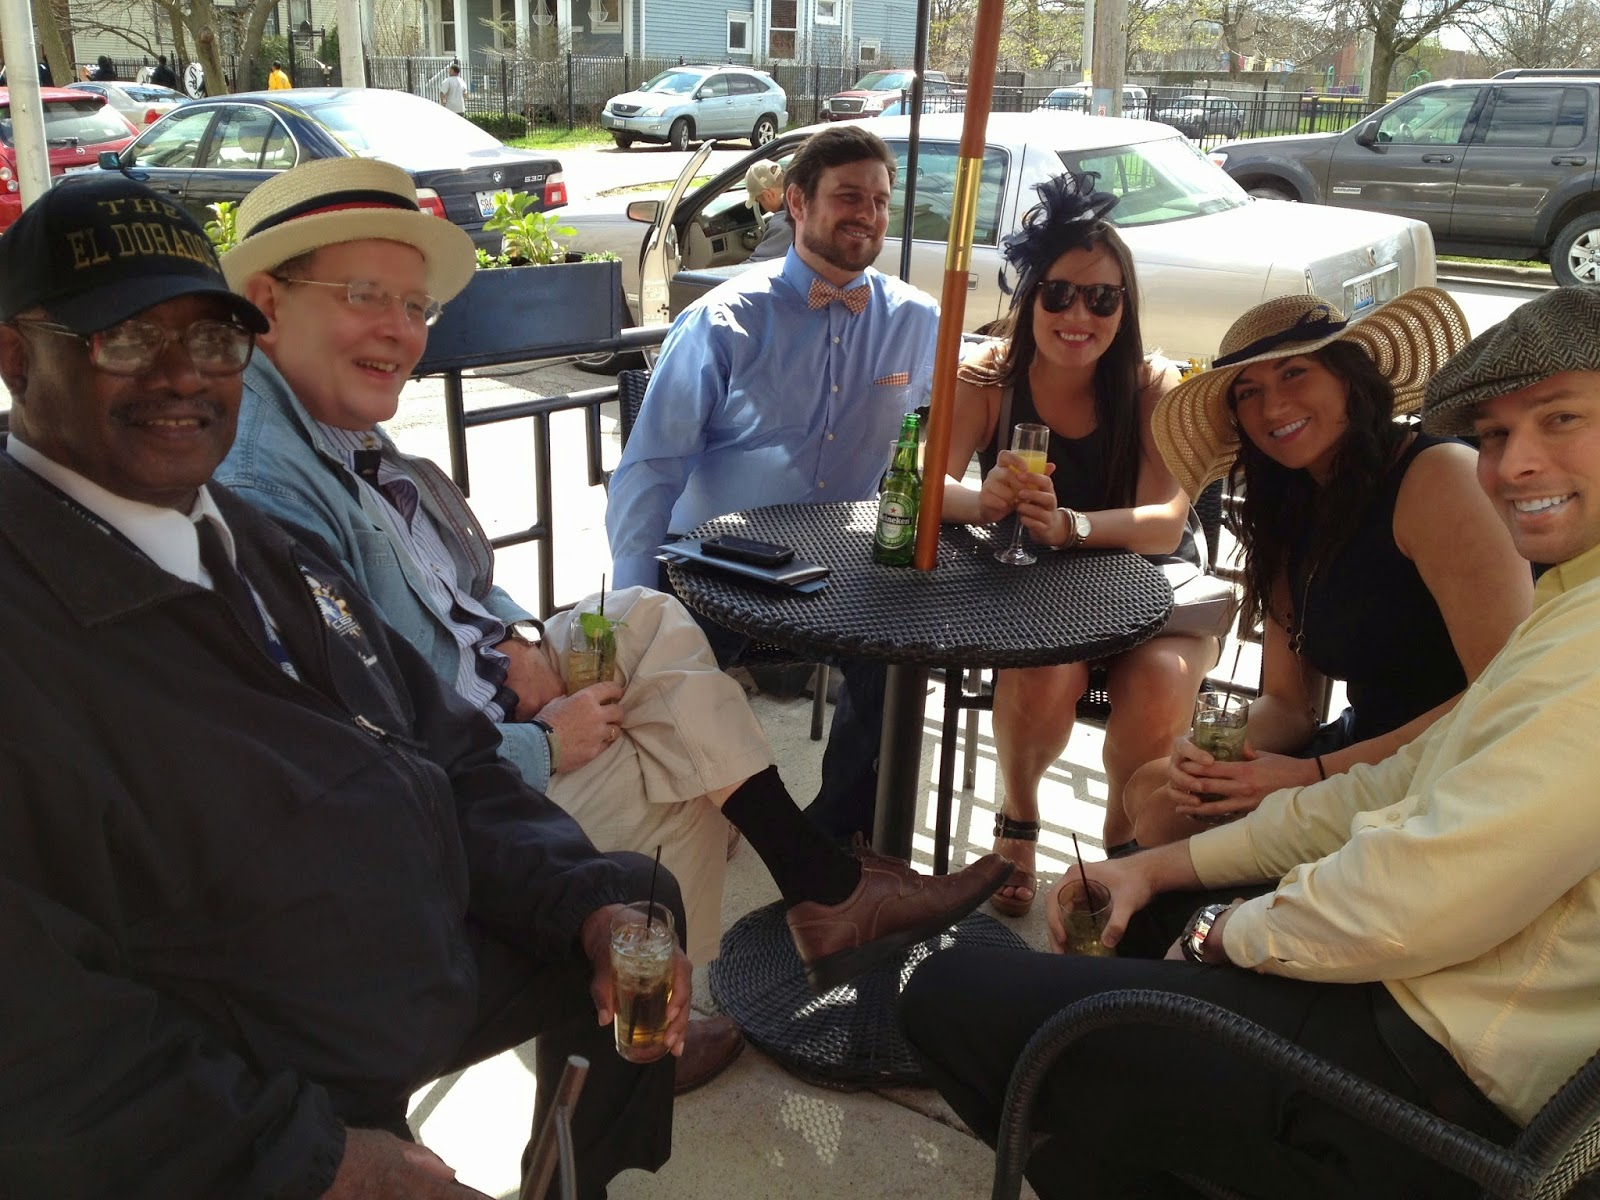 Normans Bistro Kentucky Derby Day Party